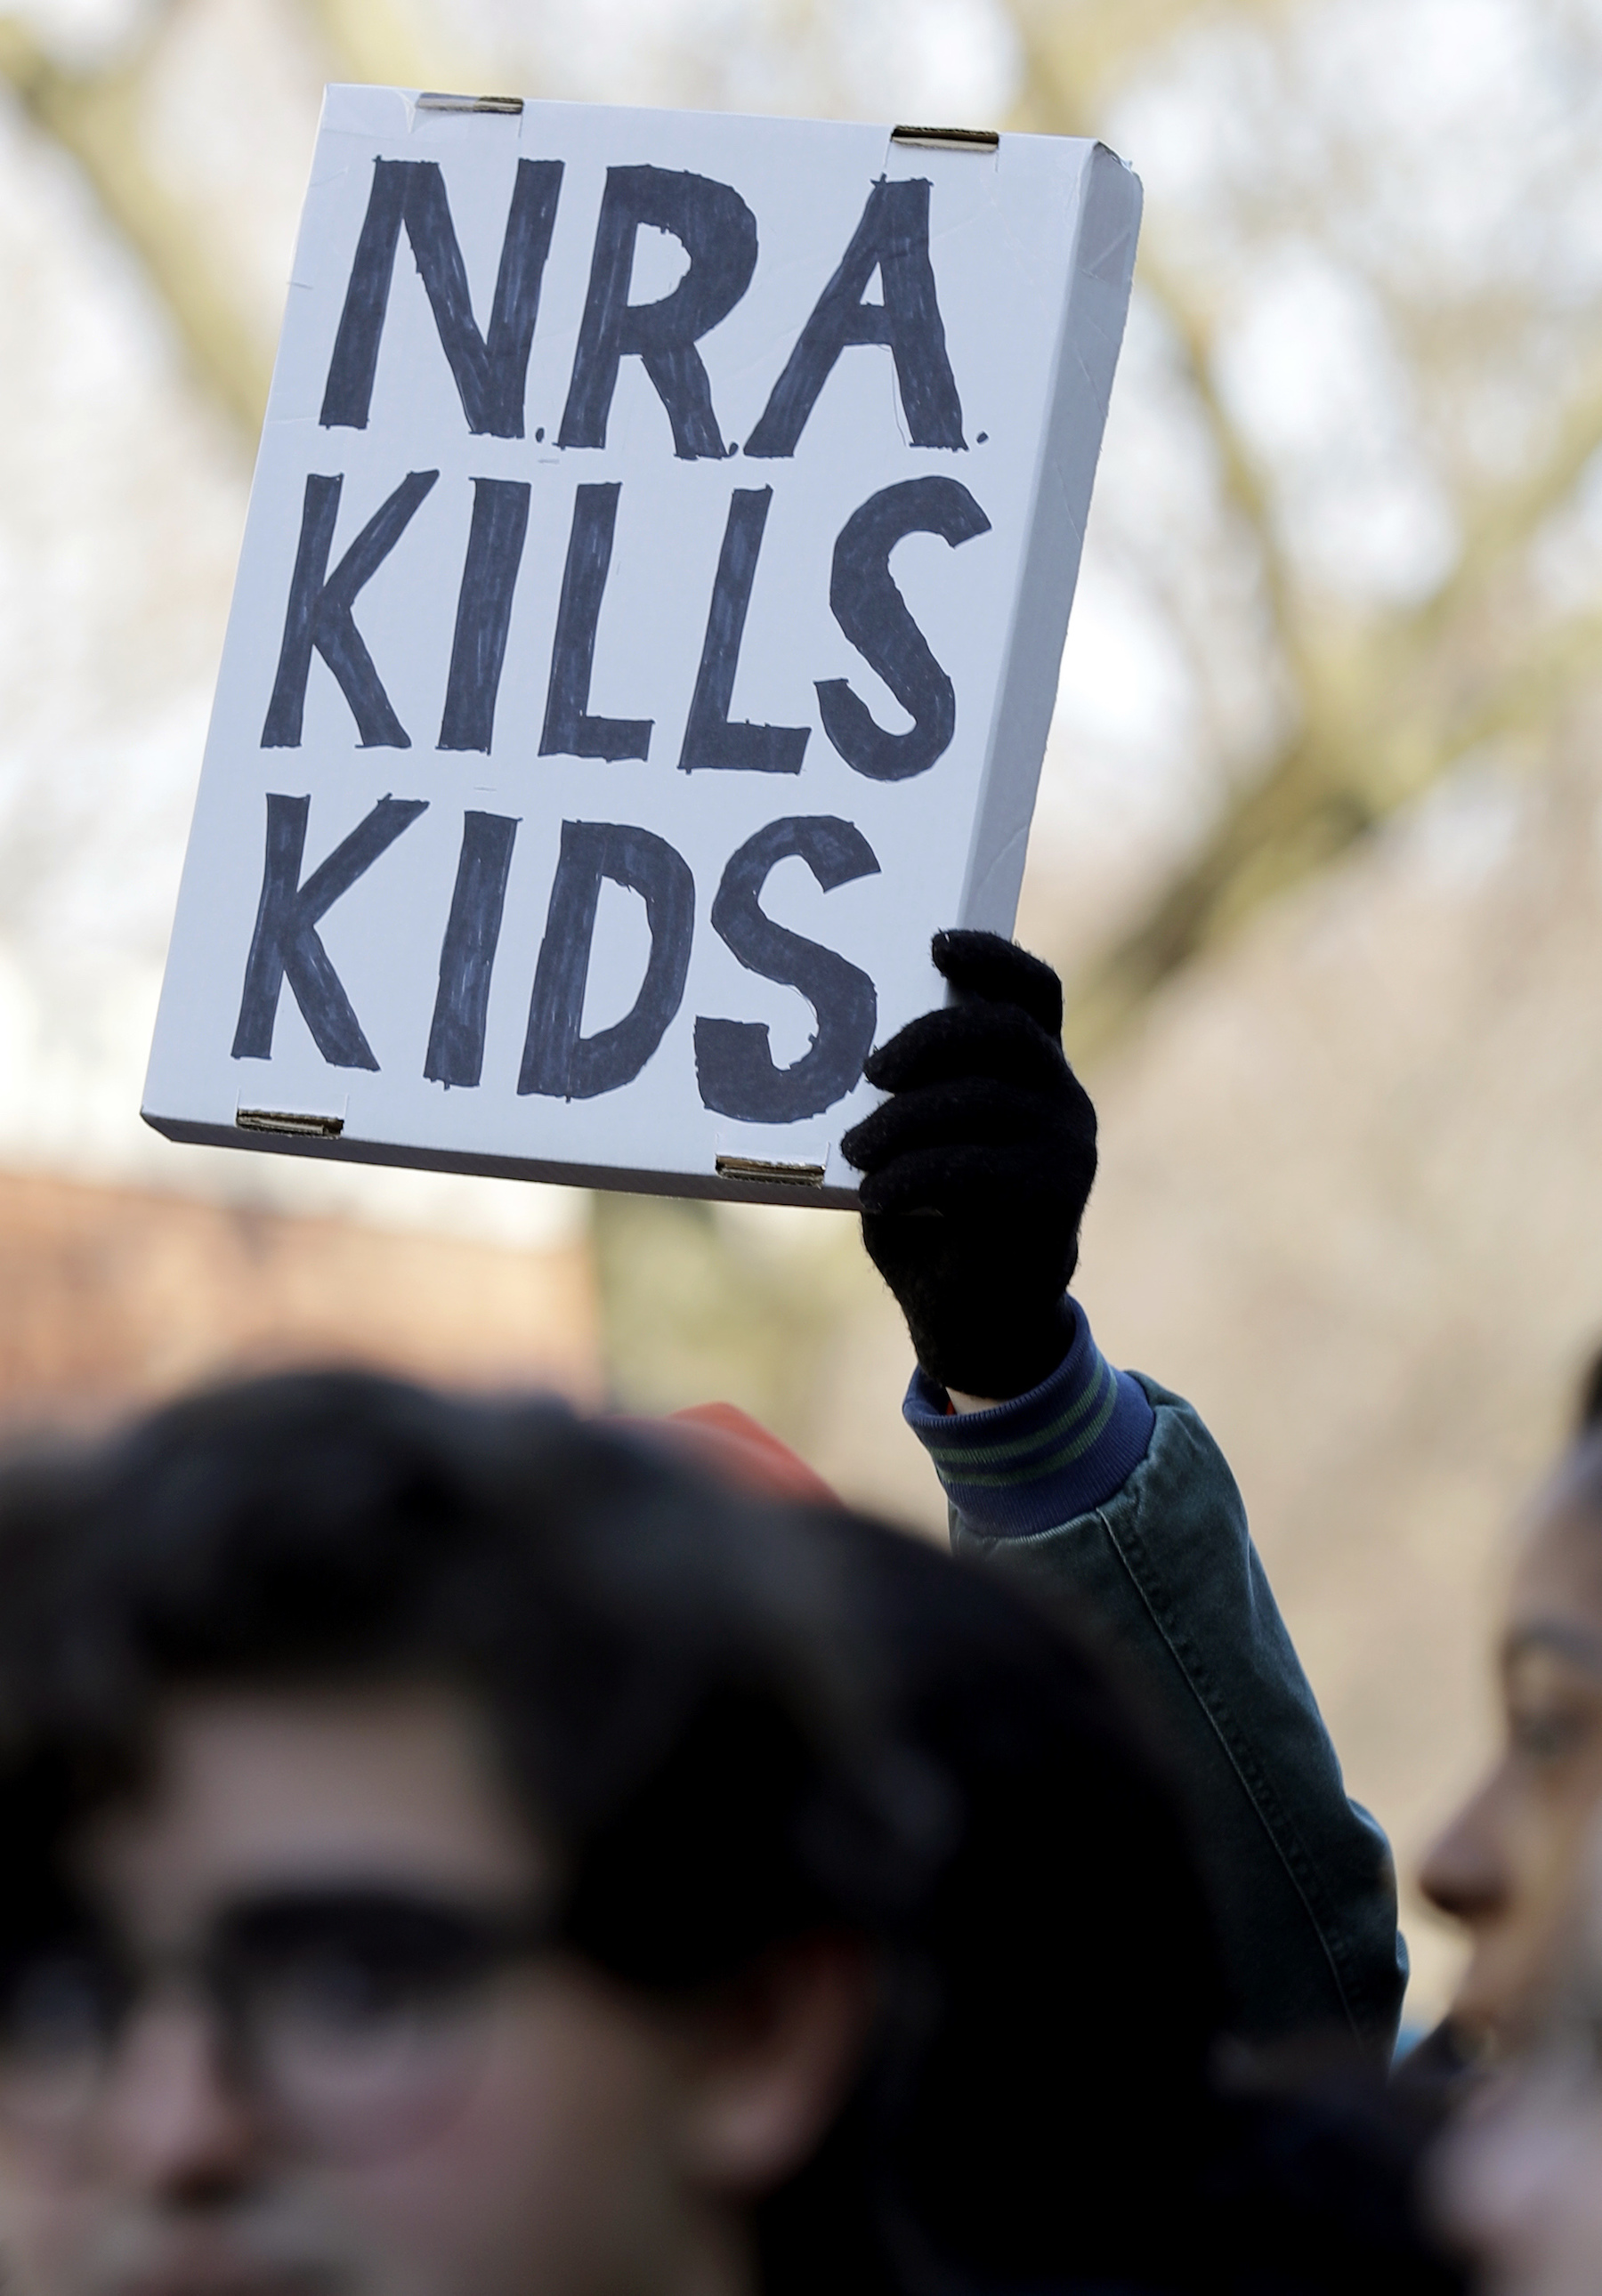 "<div class=""meta image-caption""><div class=""origin-logo origin-image ap""><span>AP</span></div><span class=""caption-text"">Students participate in a walkout to protest gun violence at Lincoln Park High School in Chicago. (AP Photo/Nam Y. Huh)</span></div>"